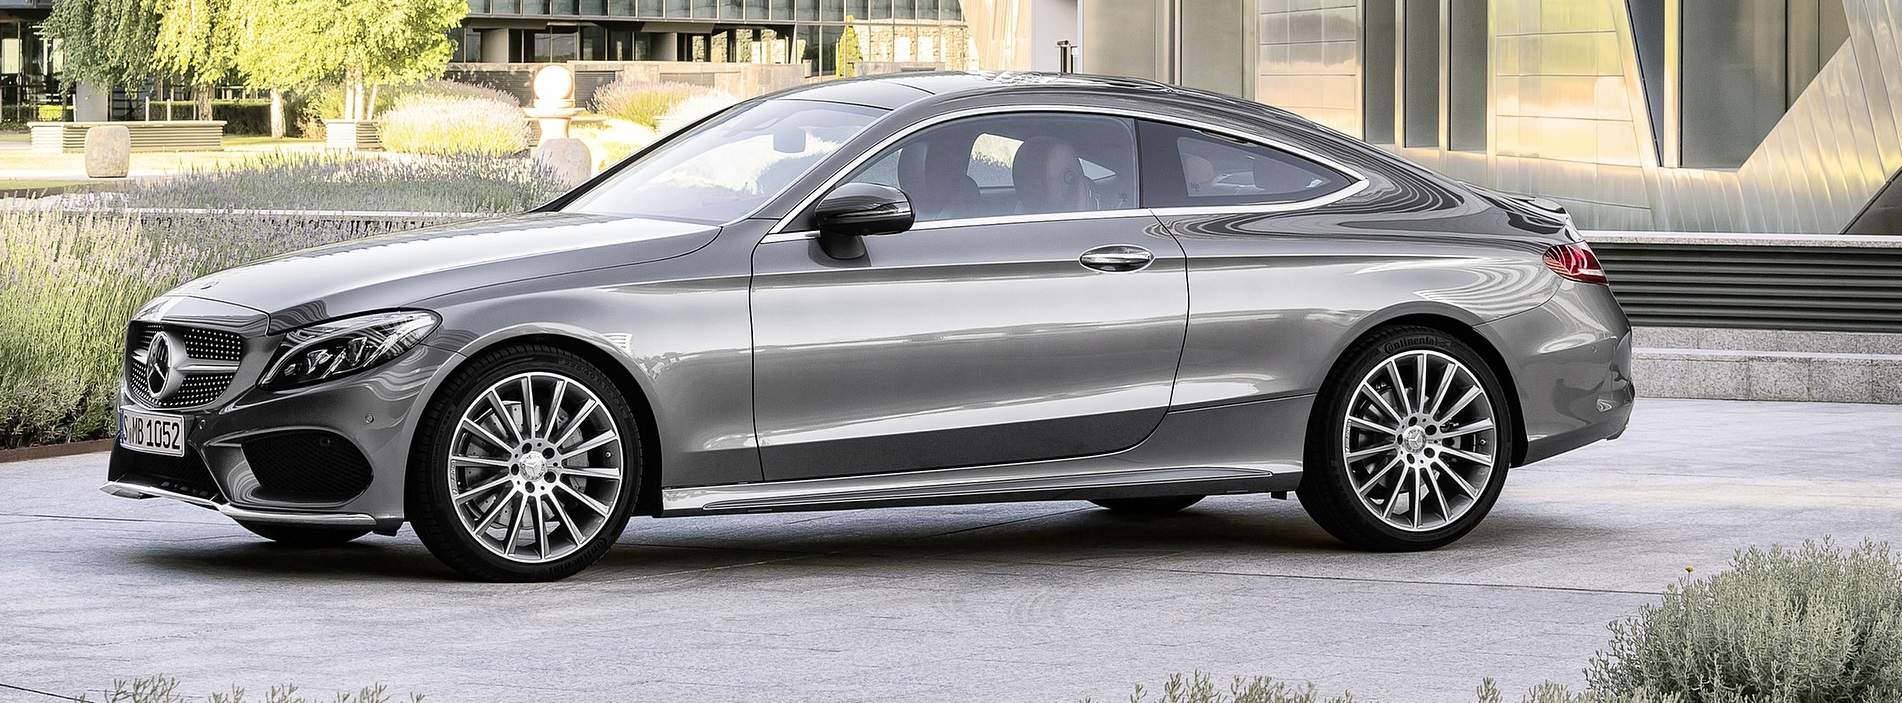 MERCEDES C-CLASS COUPE C220 Cdi Blueeff Avantgarde